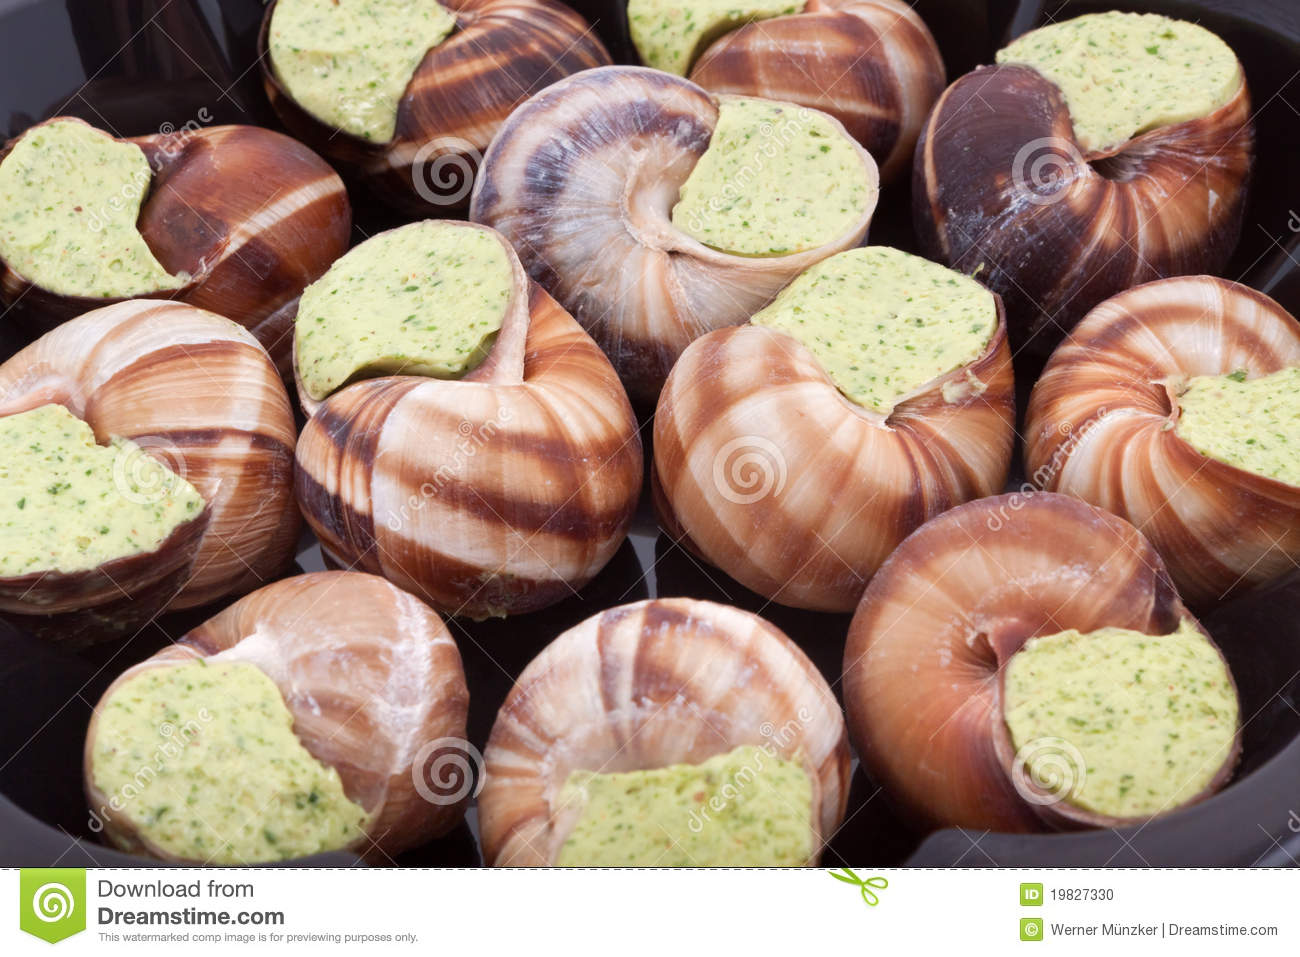 Snails with herb butter as background.